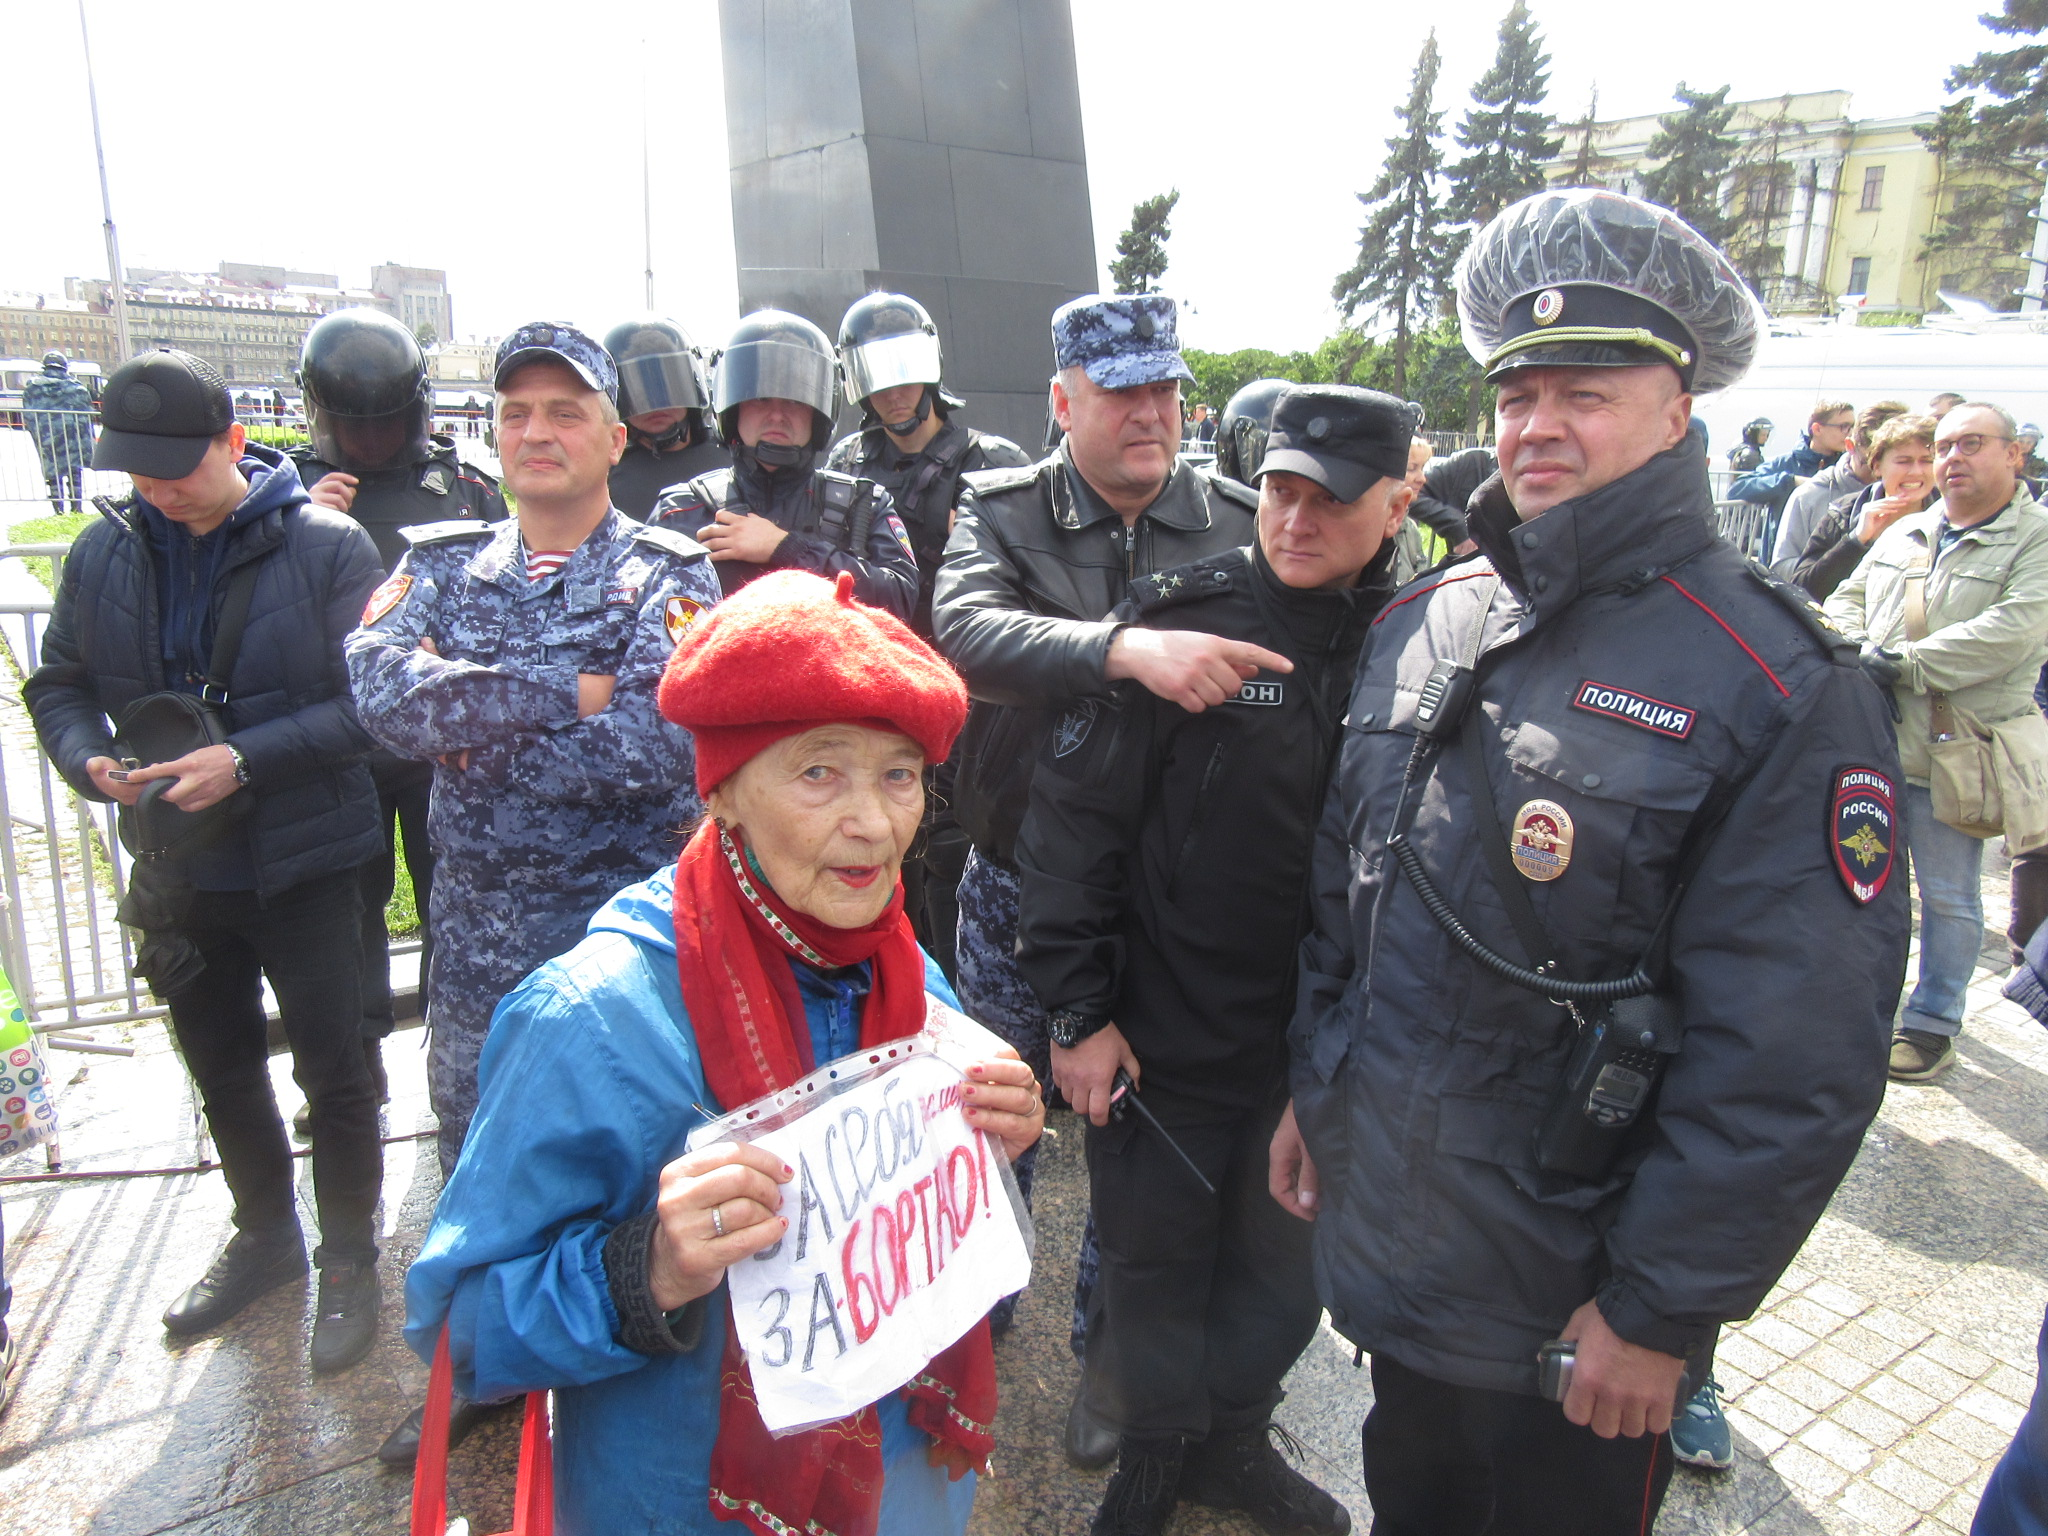 St_Petersburg.2019-08-02.Solidarity_with_Moscow_protests_rally.IMG_3931.jpg